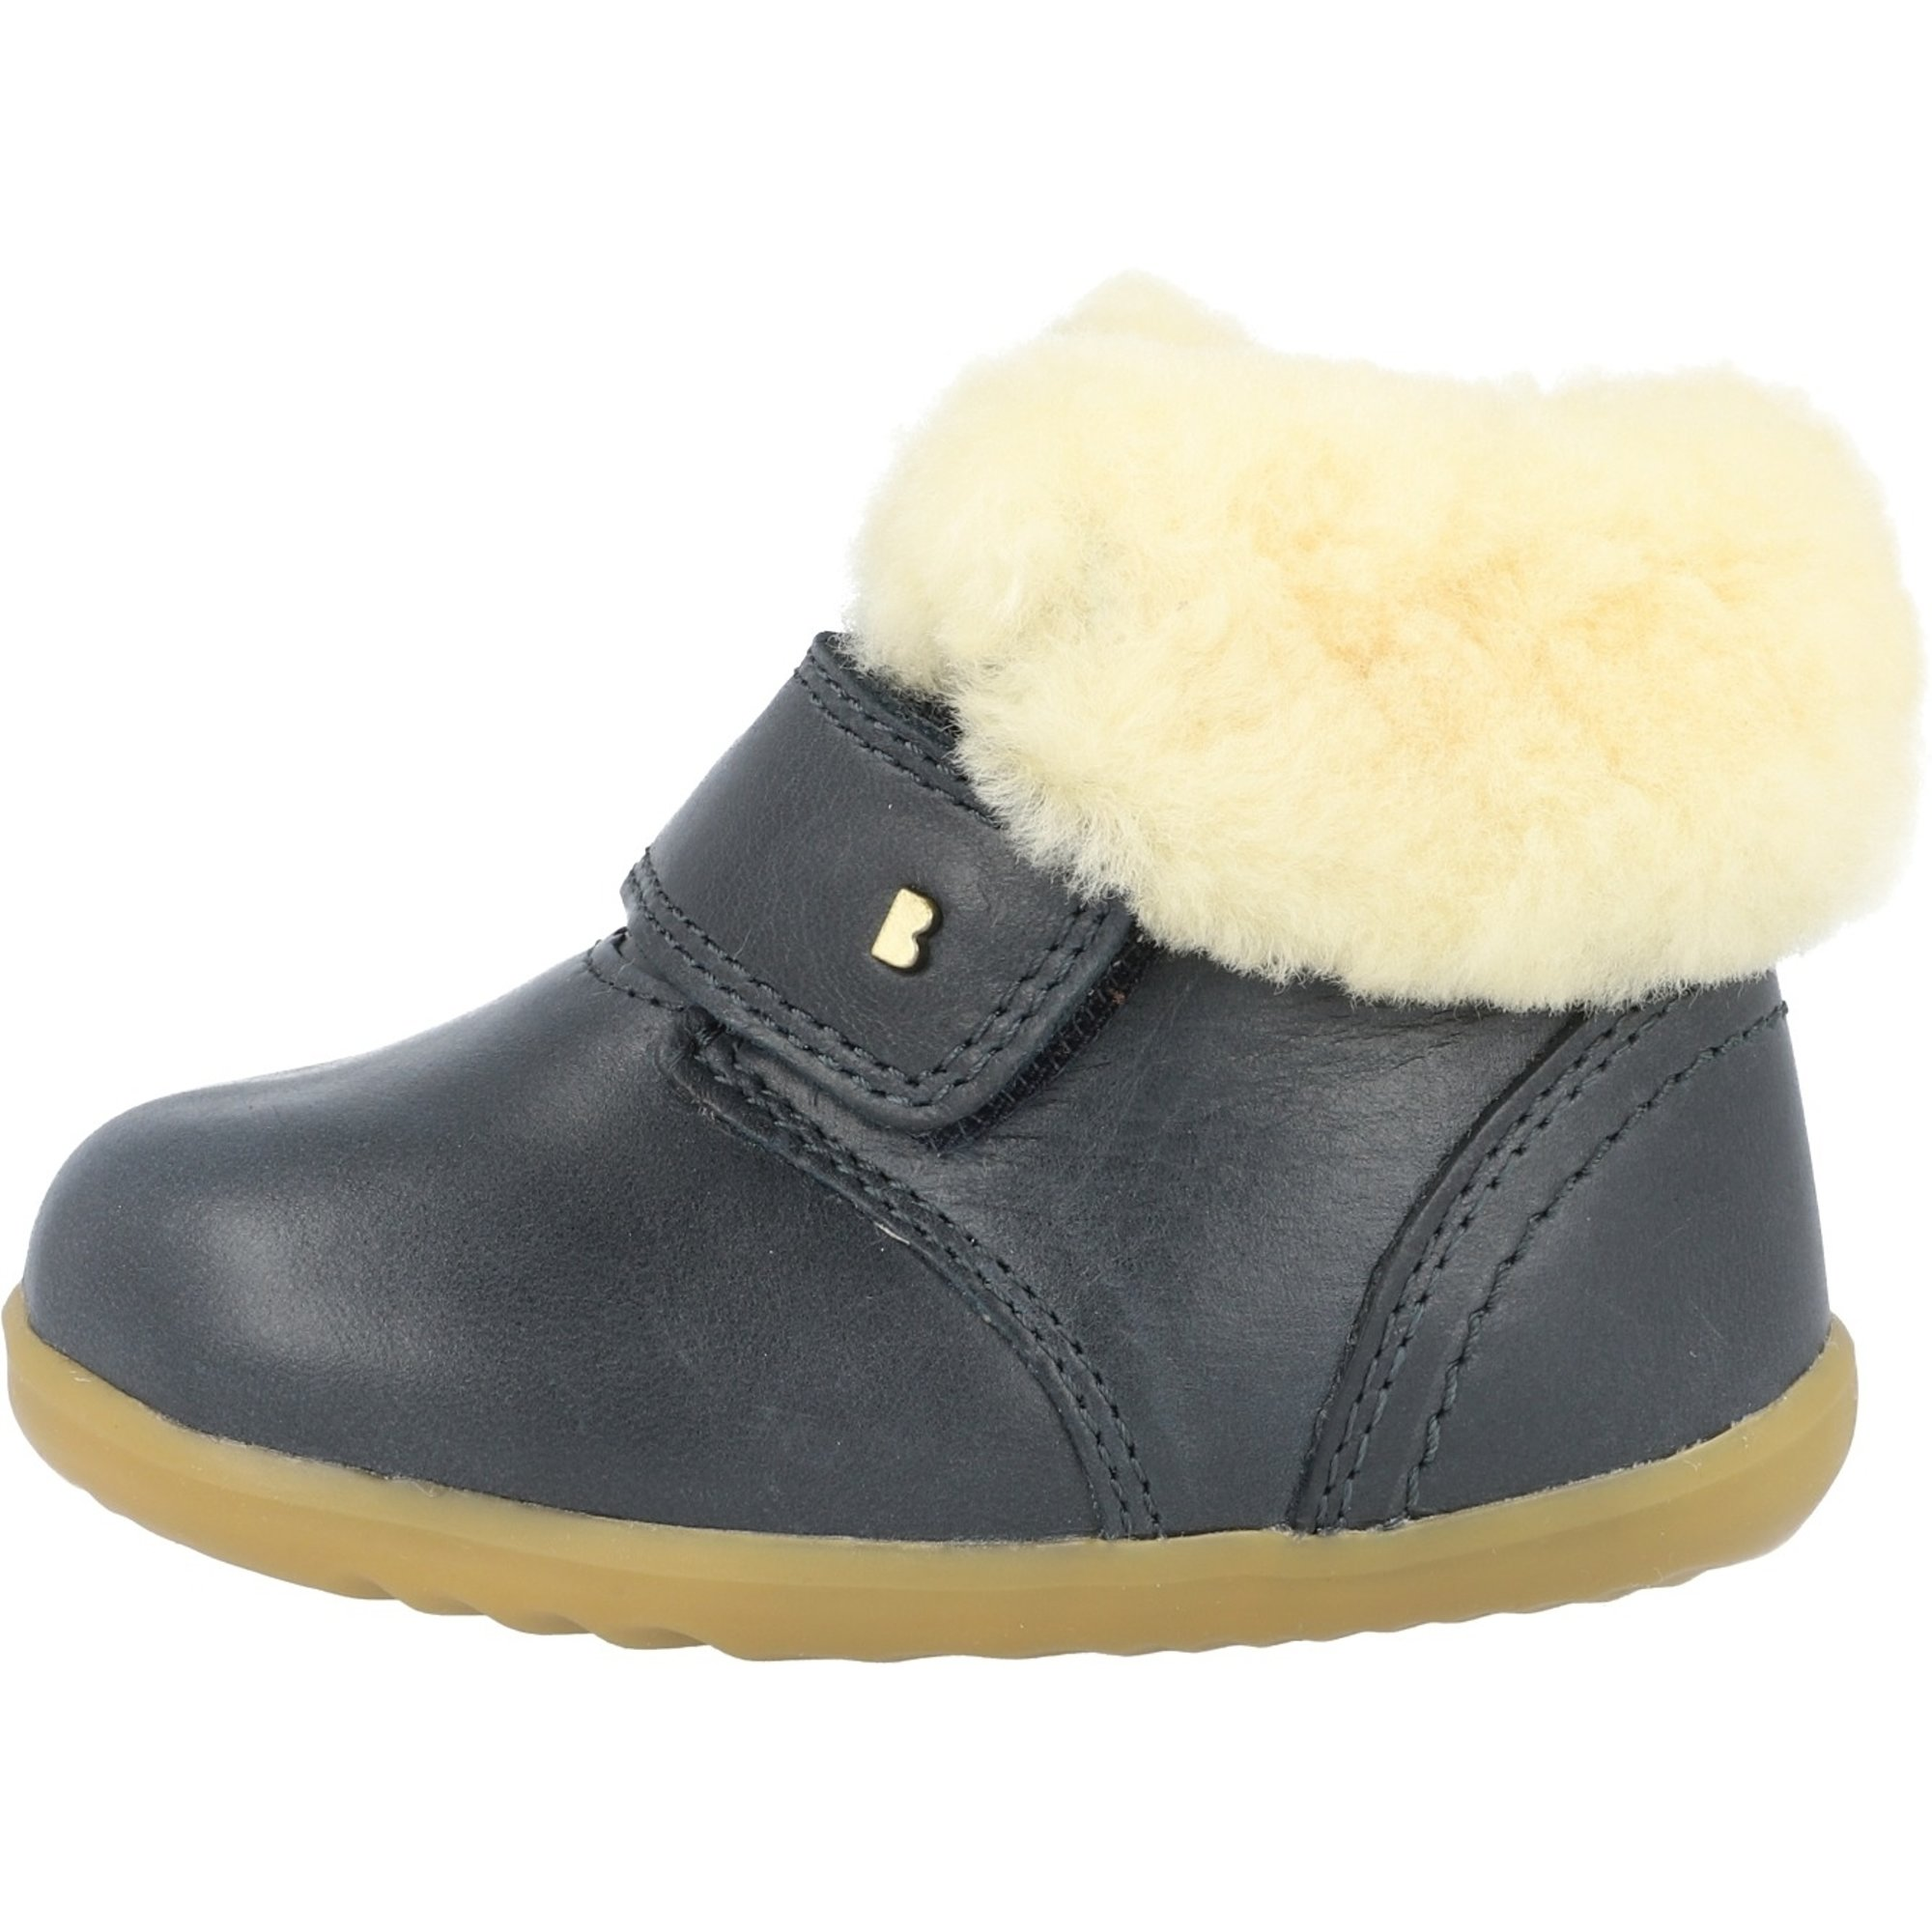 Bobux Step Up Desert Arctic Navy Quickdry Vintage-Look Leather